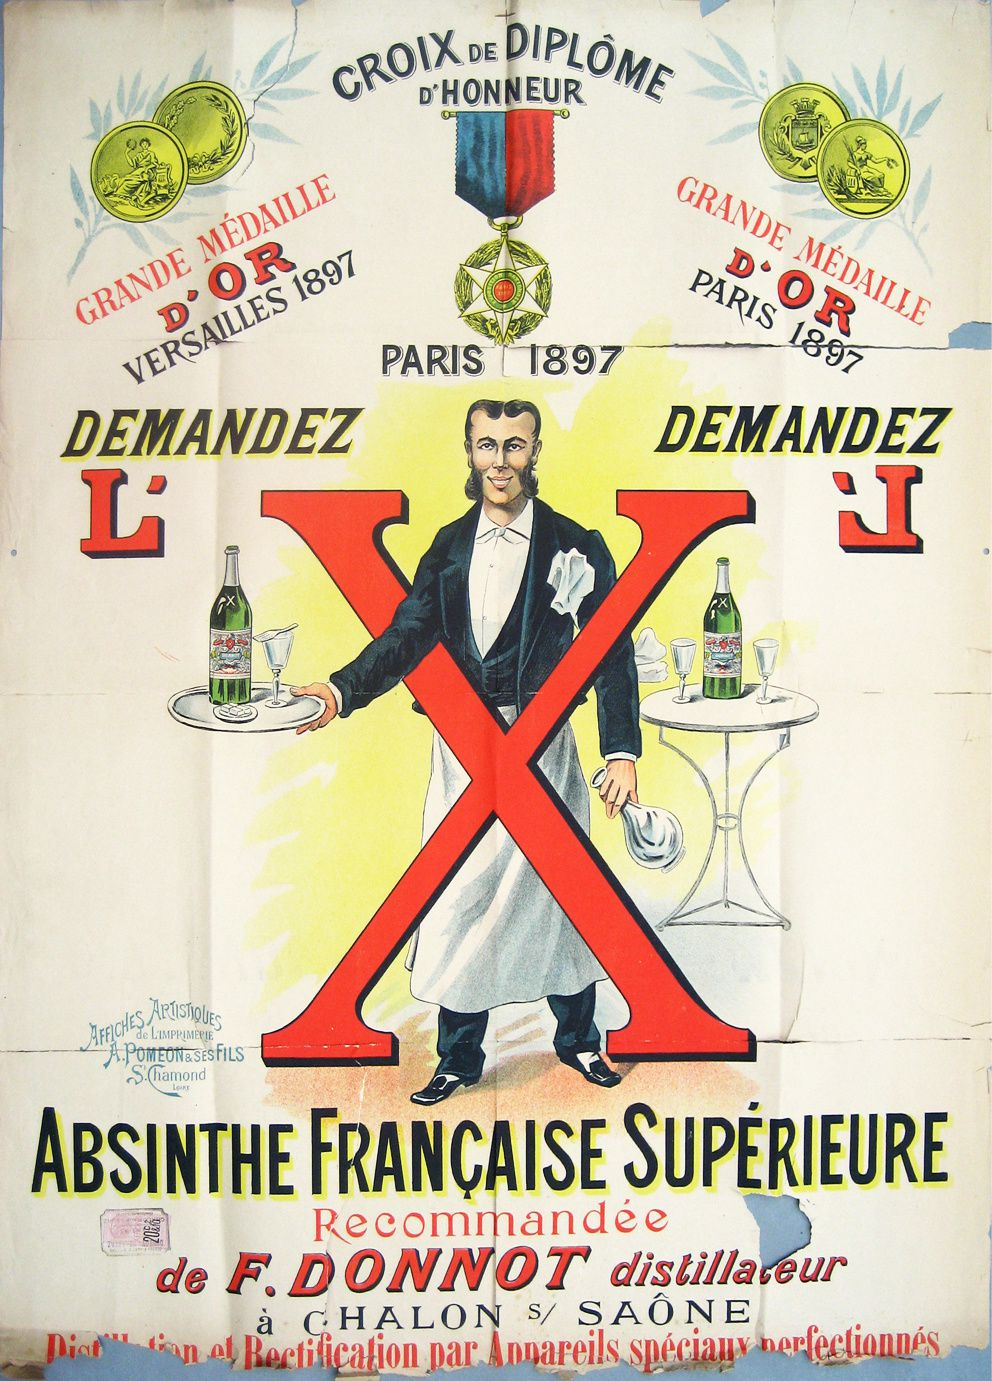 Affiche pour l'absinthe X de Donnot. Collection Delahaye.